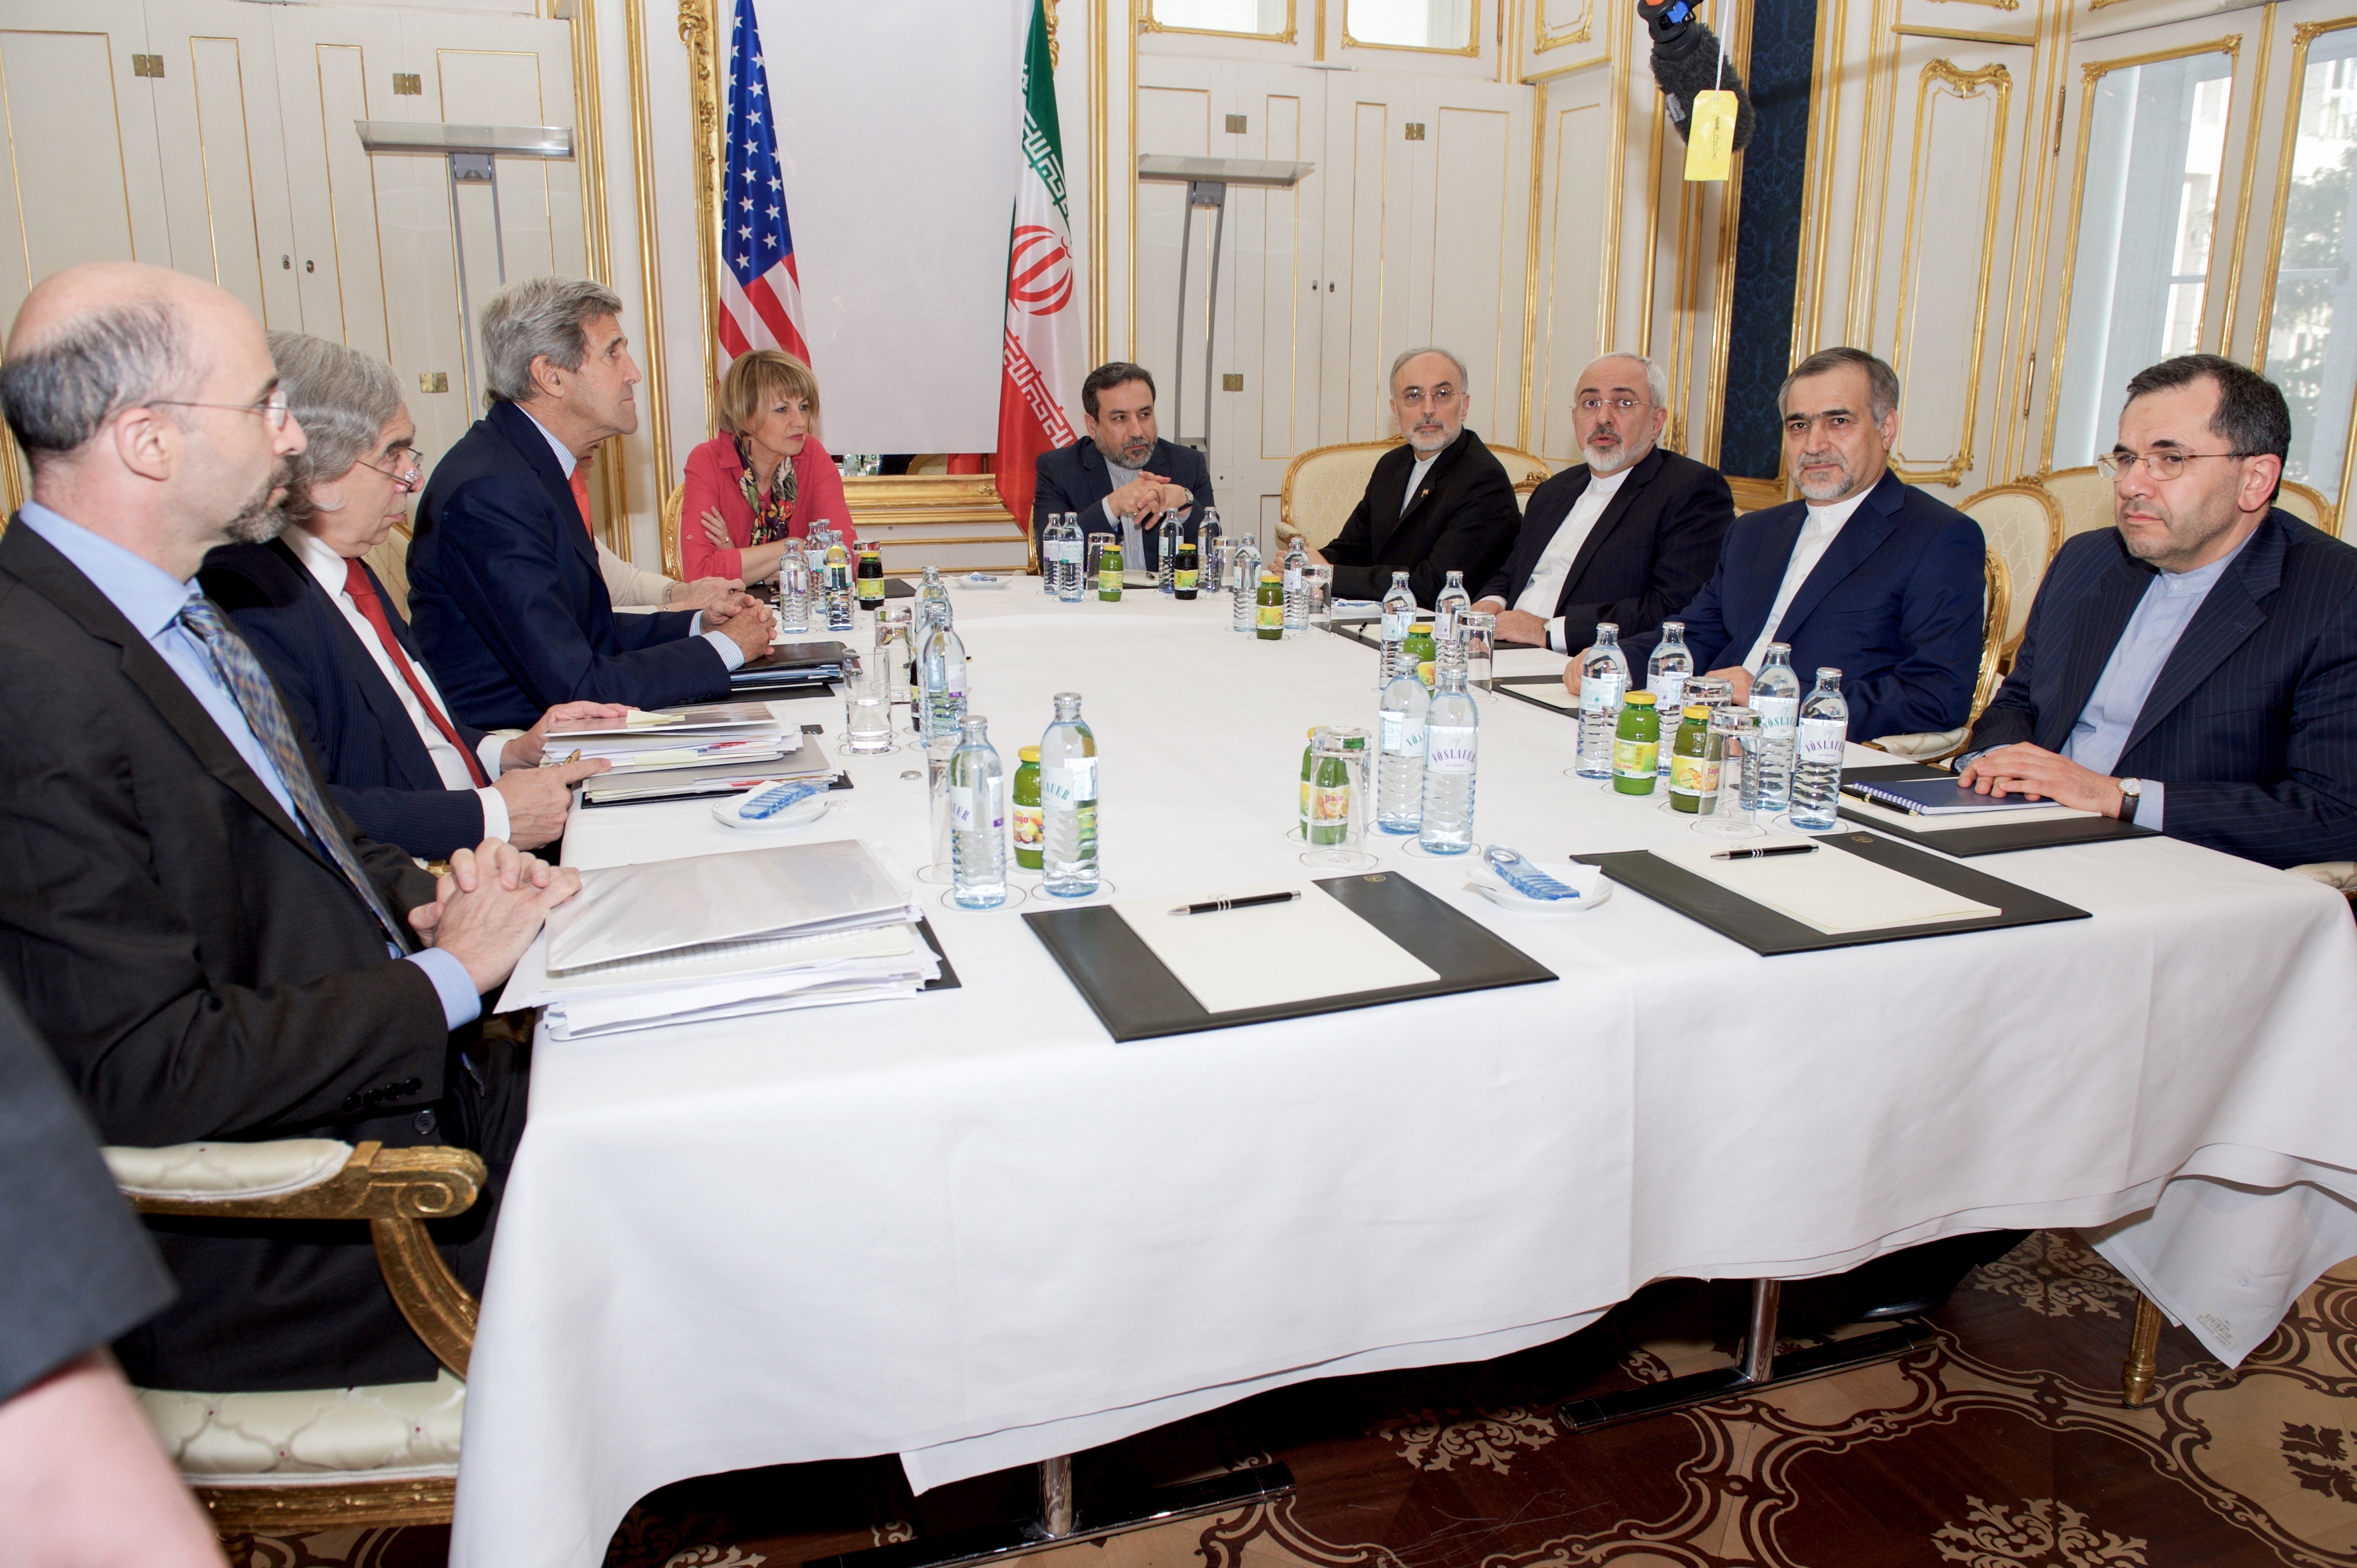 Iranian Foreign Minister Mohammad Javad Zarif (third from right) speaks to reporters during a break in talks with the U.S. delegation, headed by Secretary of State John Kerry (third from left) in Vienna on July 3.  At Kerry's left is Helga Schmid, deputy foreign policy chief for the European Union. (State Department Photo)